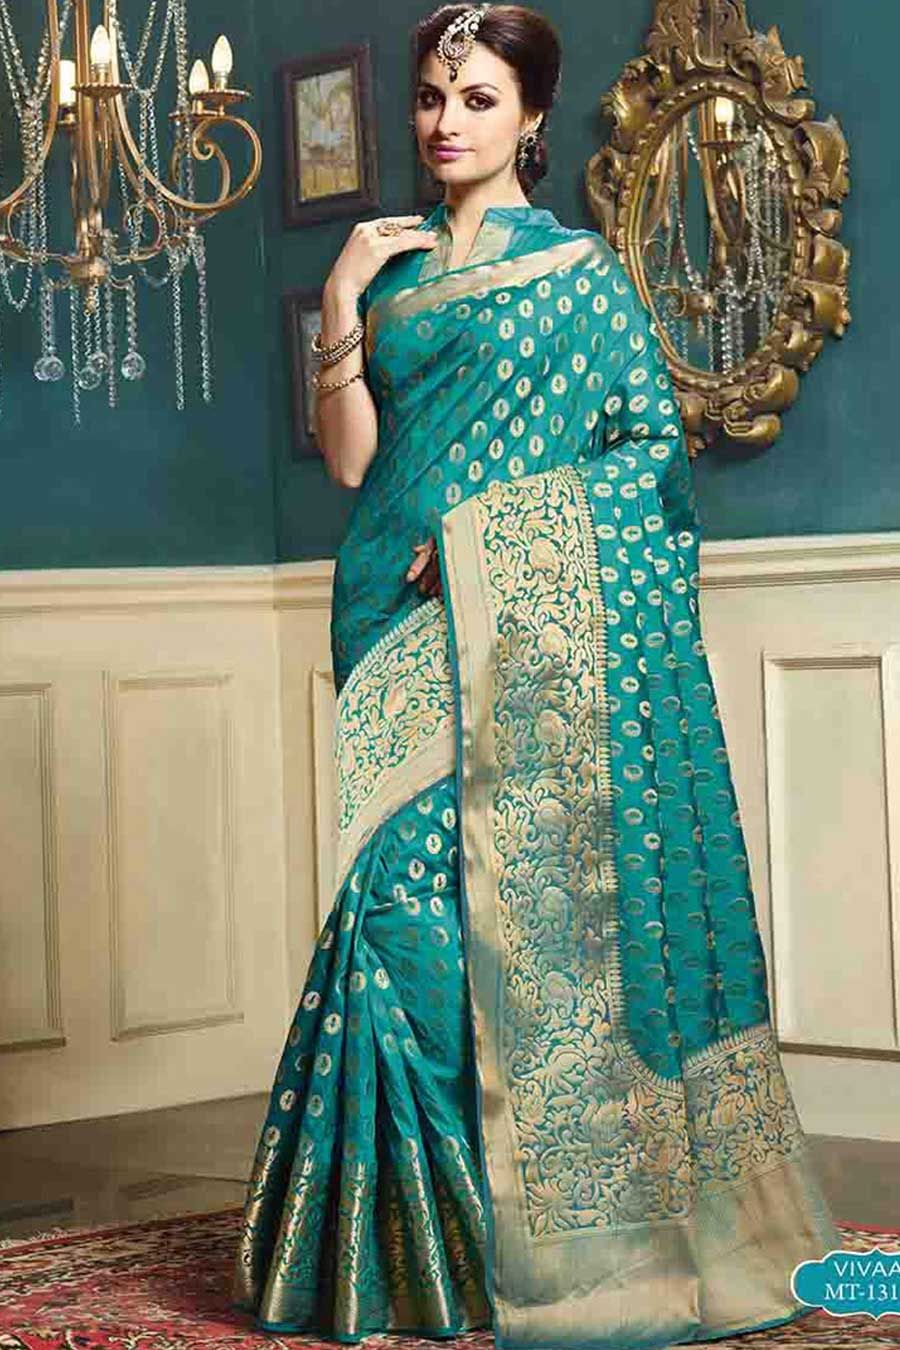 Luxury Kareena Kapoor Wedding Outfit Royal And Traditional Gallery ...